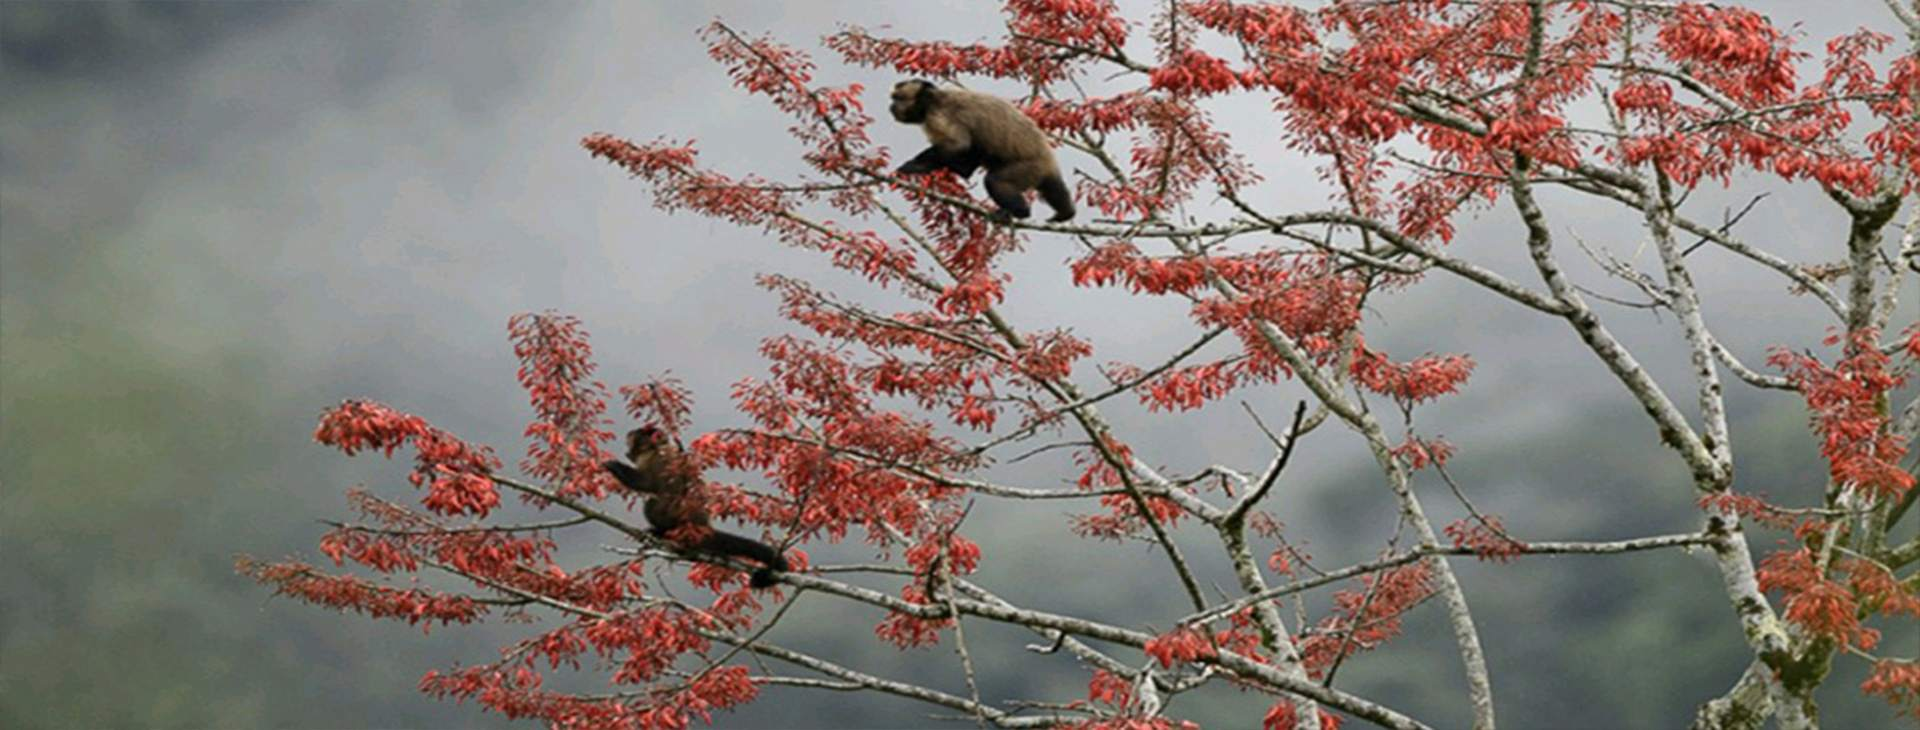 Amazon Wildlife 3dias - Amazon Wildlife Peru Travel